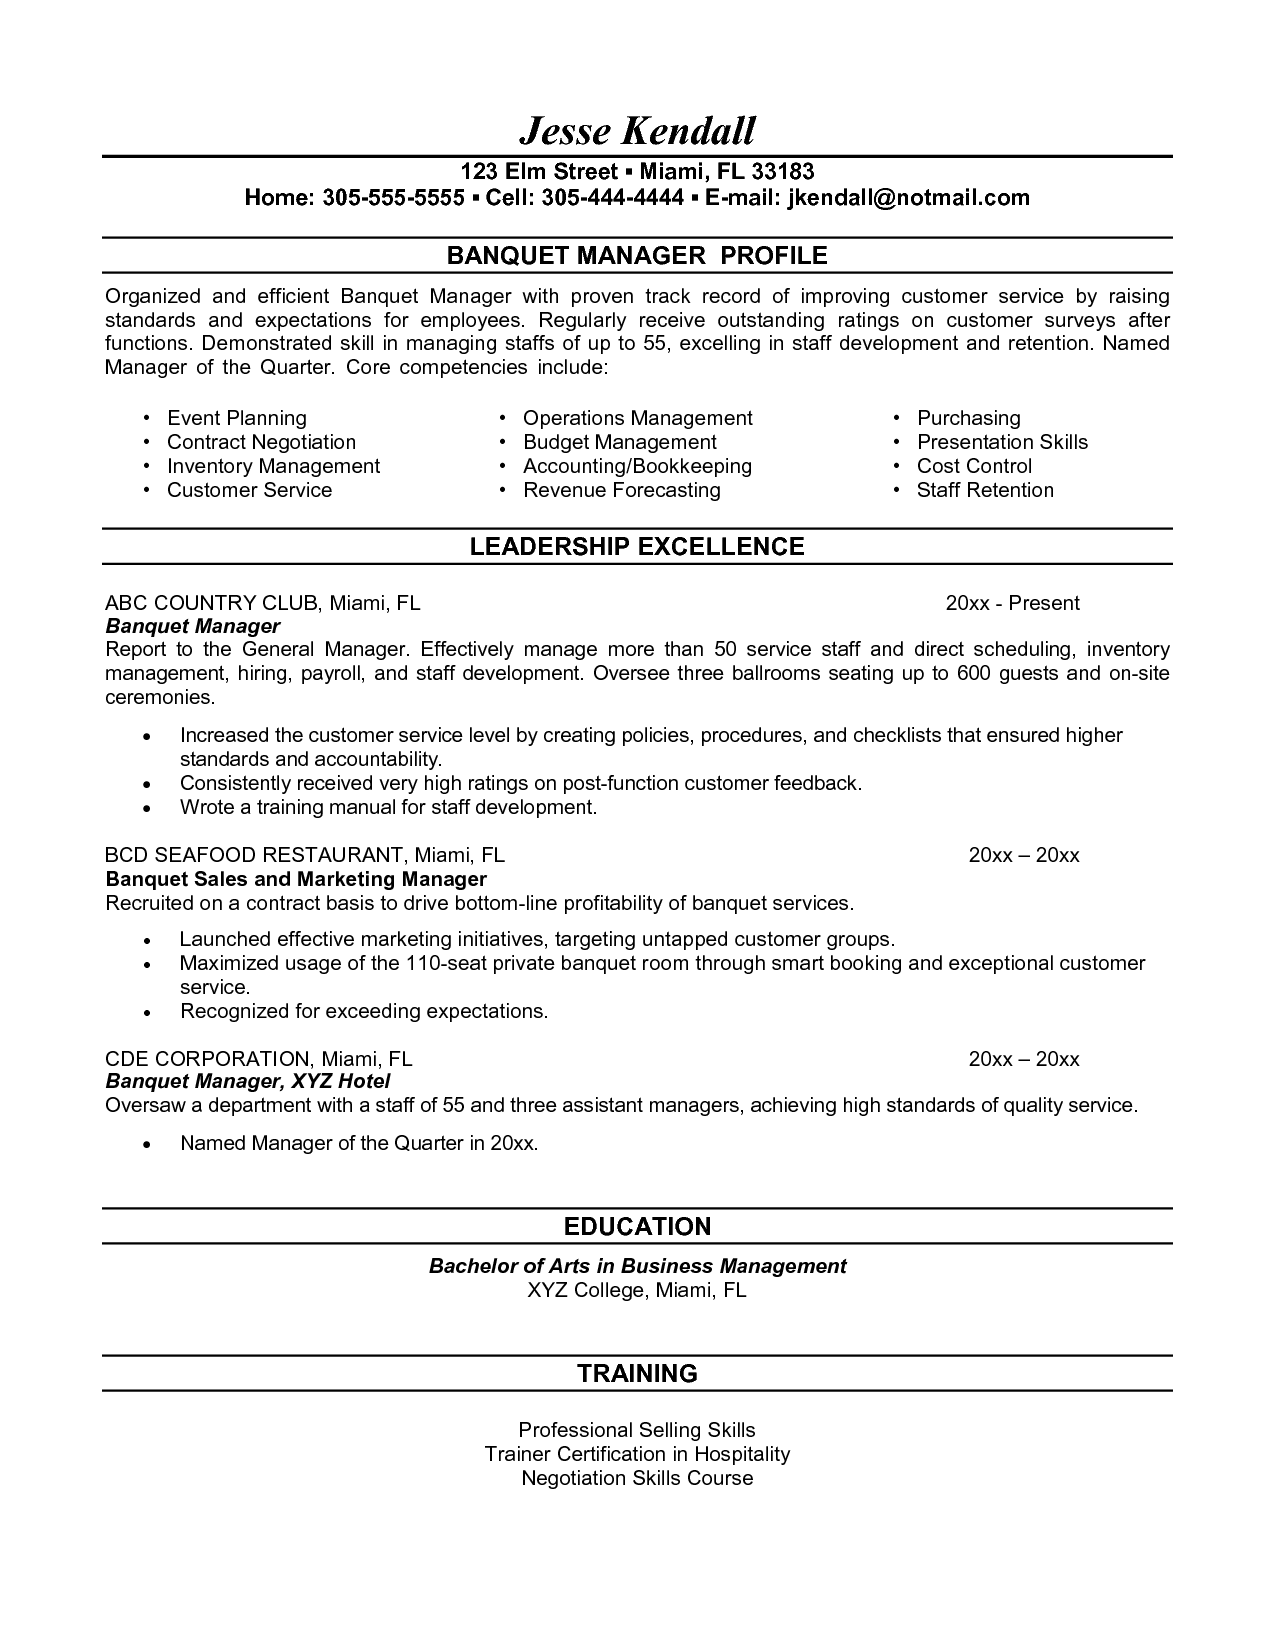 Special Education Teacher Resume School Pinterest Special